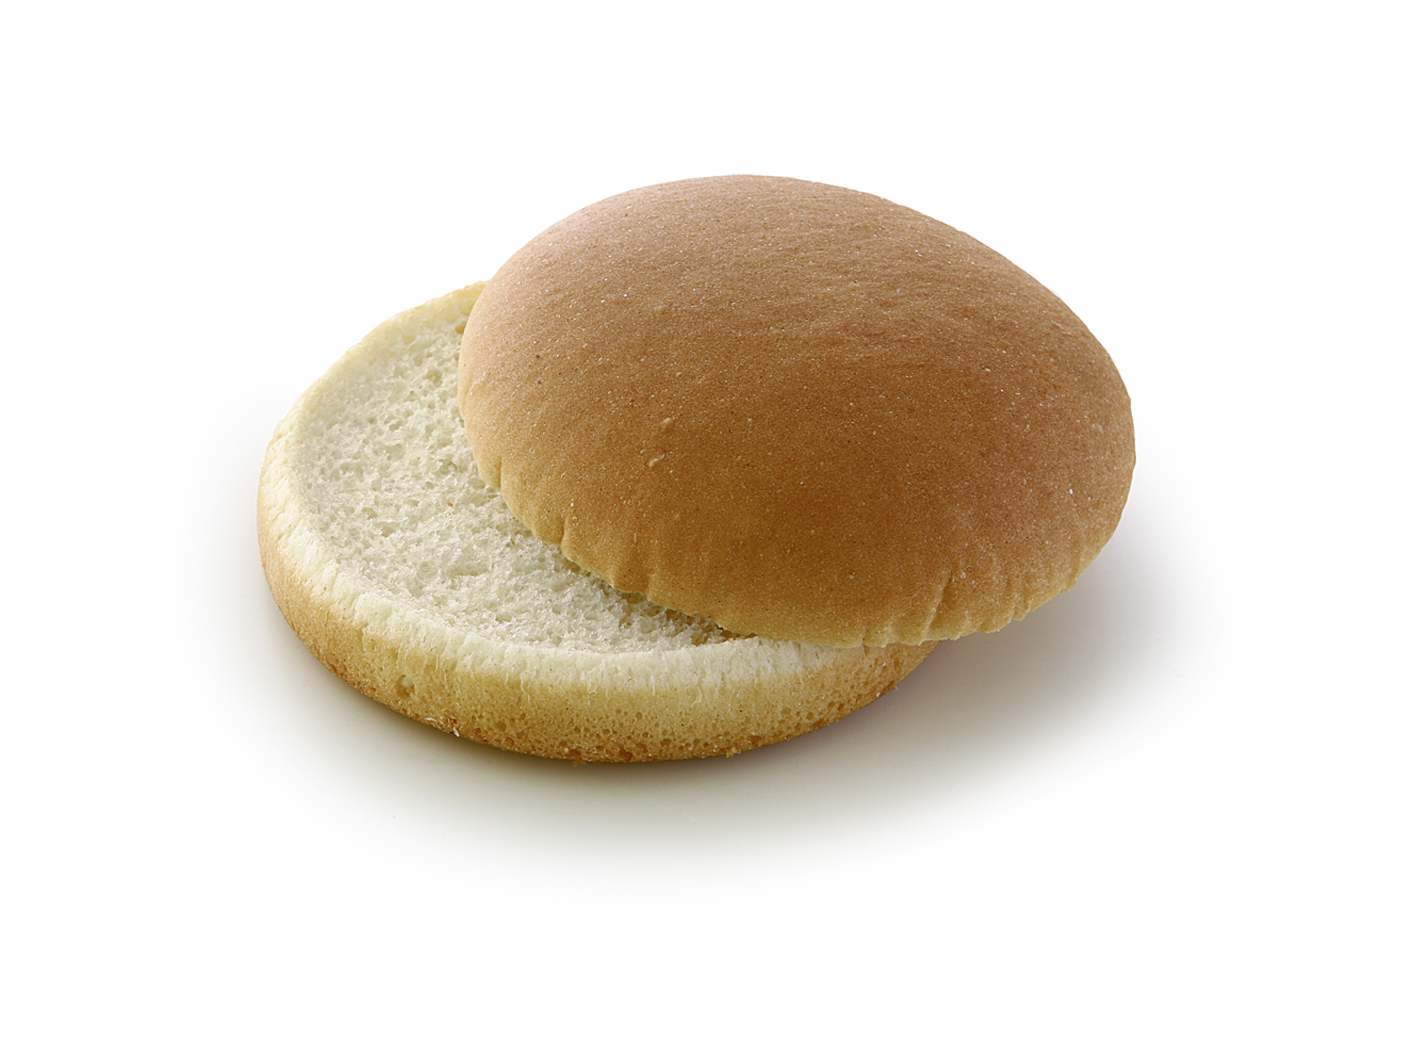 Mini Hamburger Natural - Wheat roll/ traditional shape/ thaw only/ diameter: 10 cm, 4 Inches